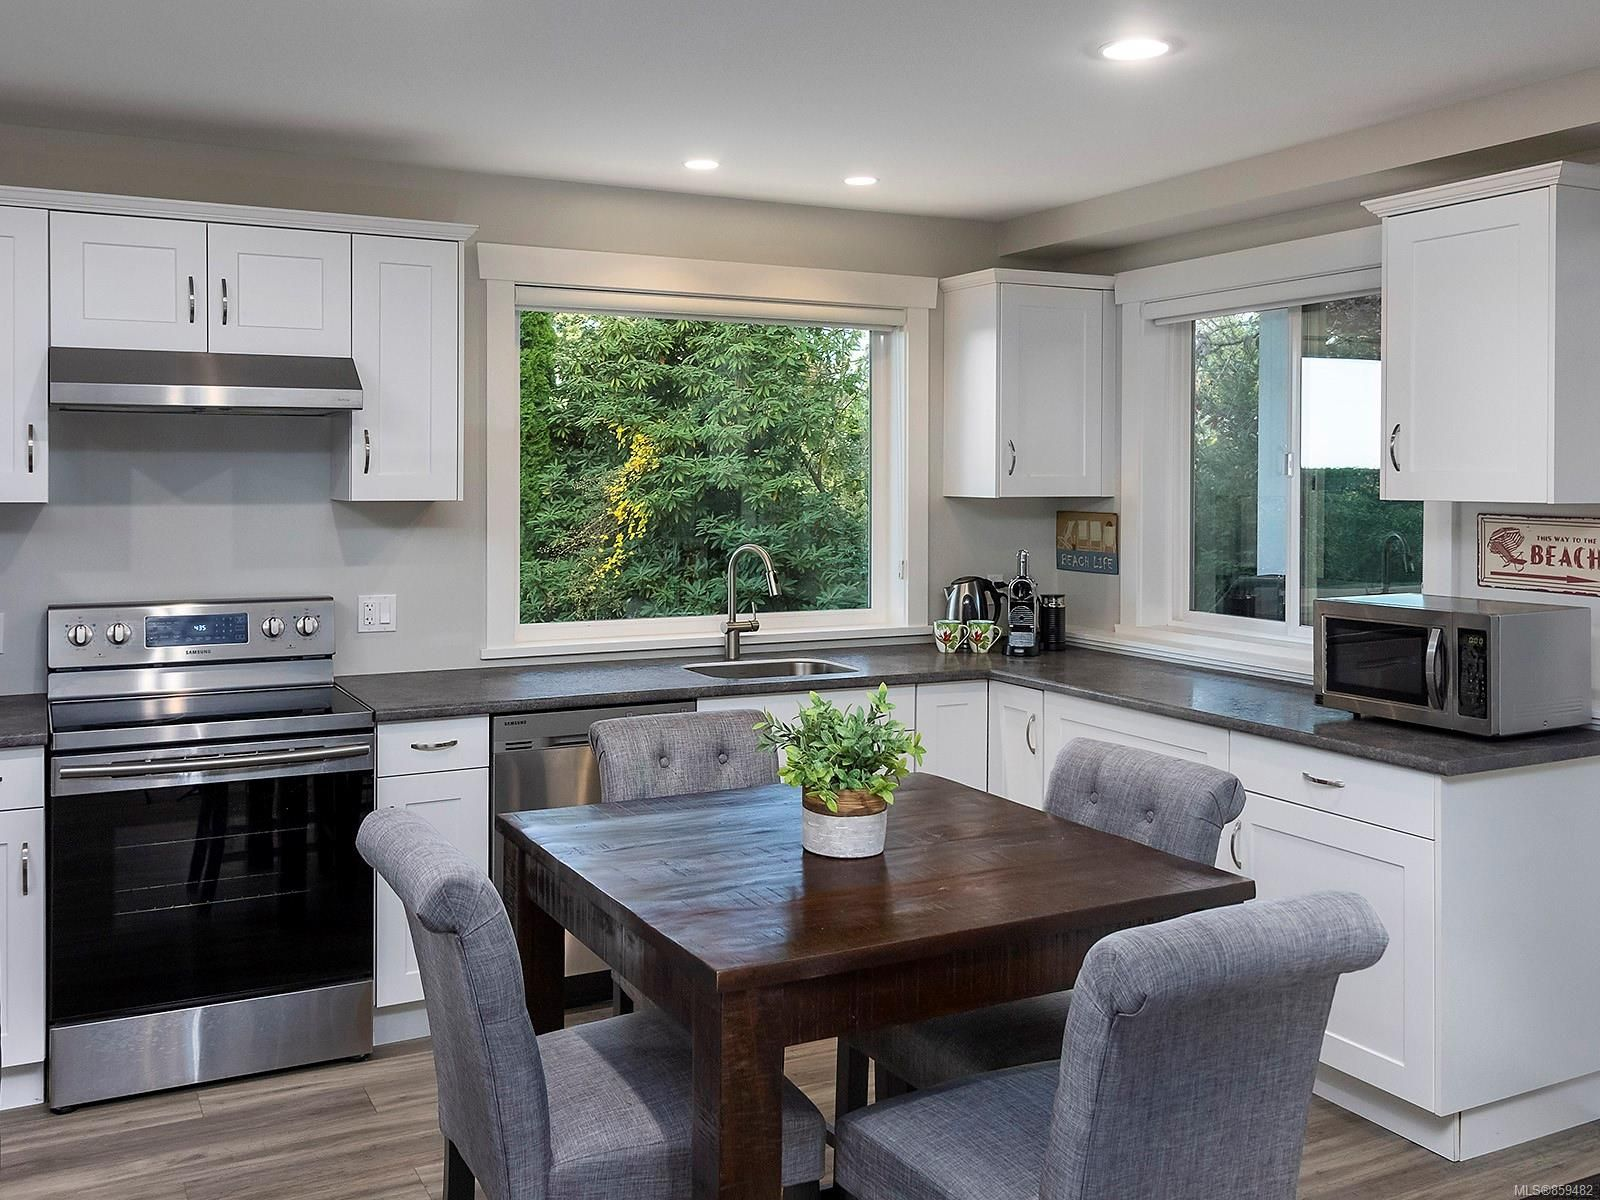 Photo 48: Photos: 4086 Monarch Pl in : SE Arbutus House for sale (Saanich East)  : MLS®# 859482